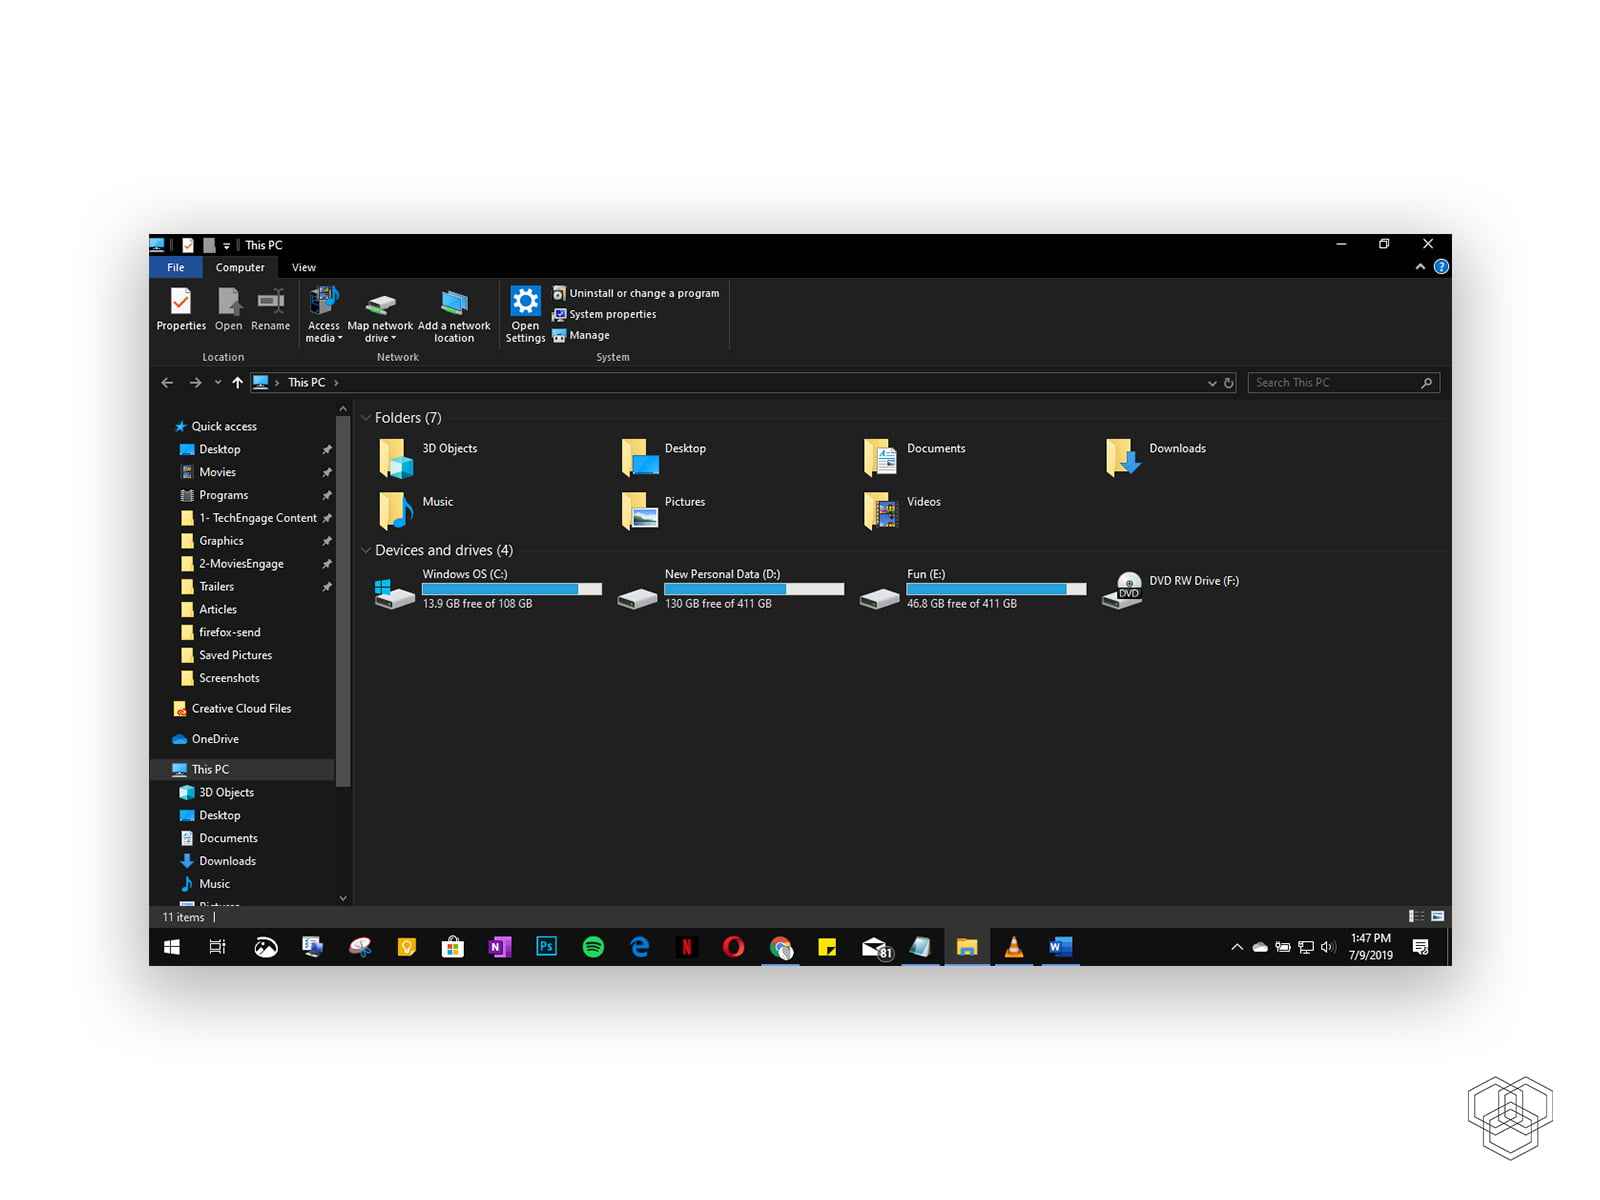 Dark mode theme in Windows 10 File Explorer